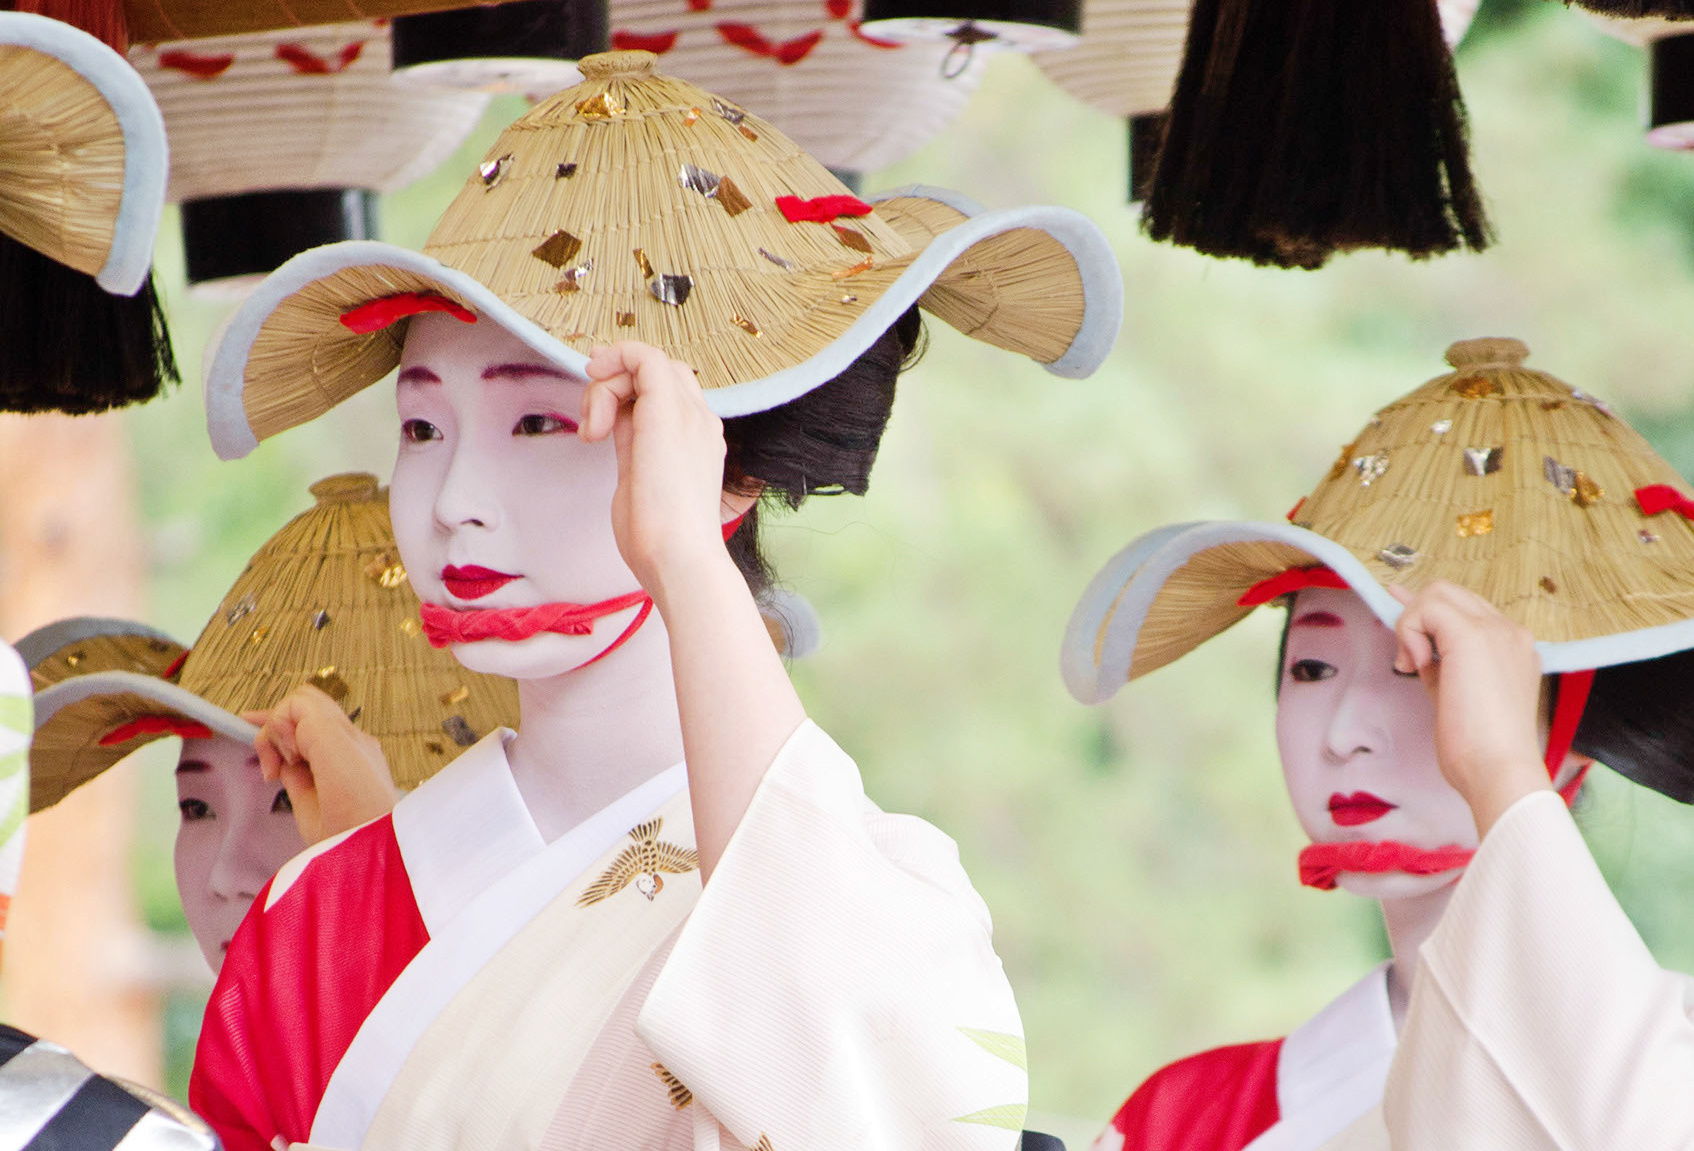 Maiko (apprentice geisha) perform together.